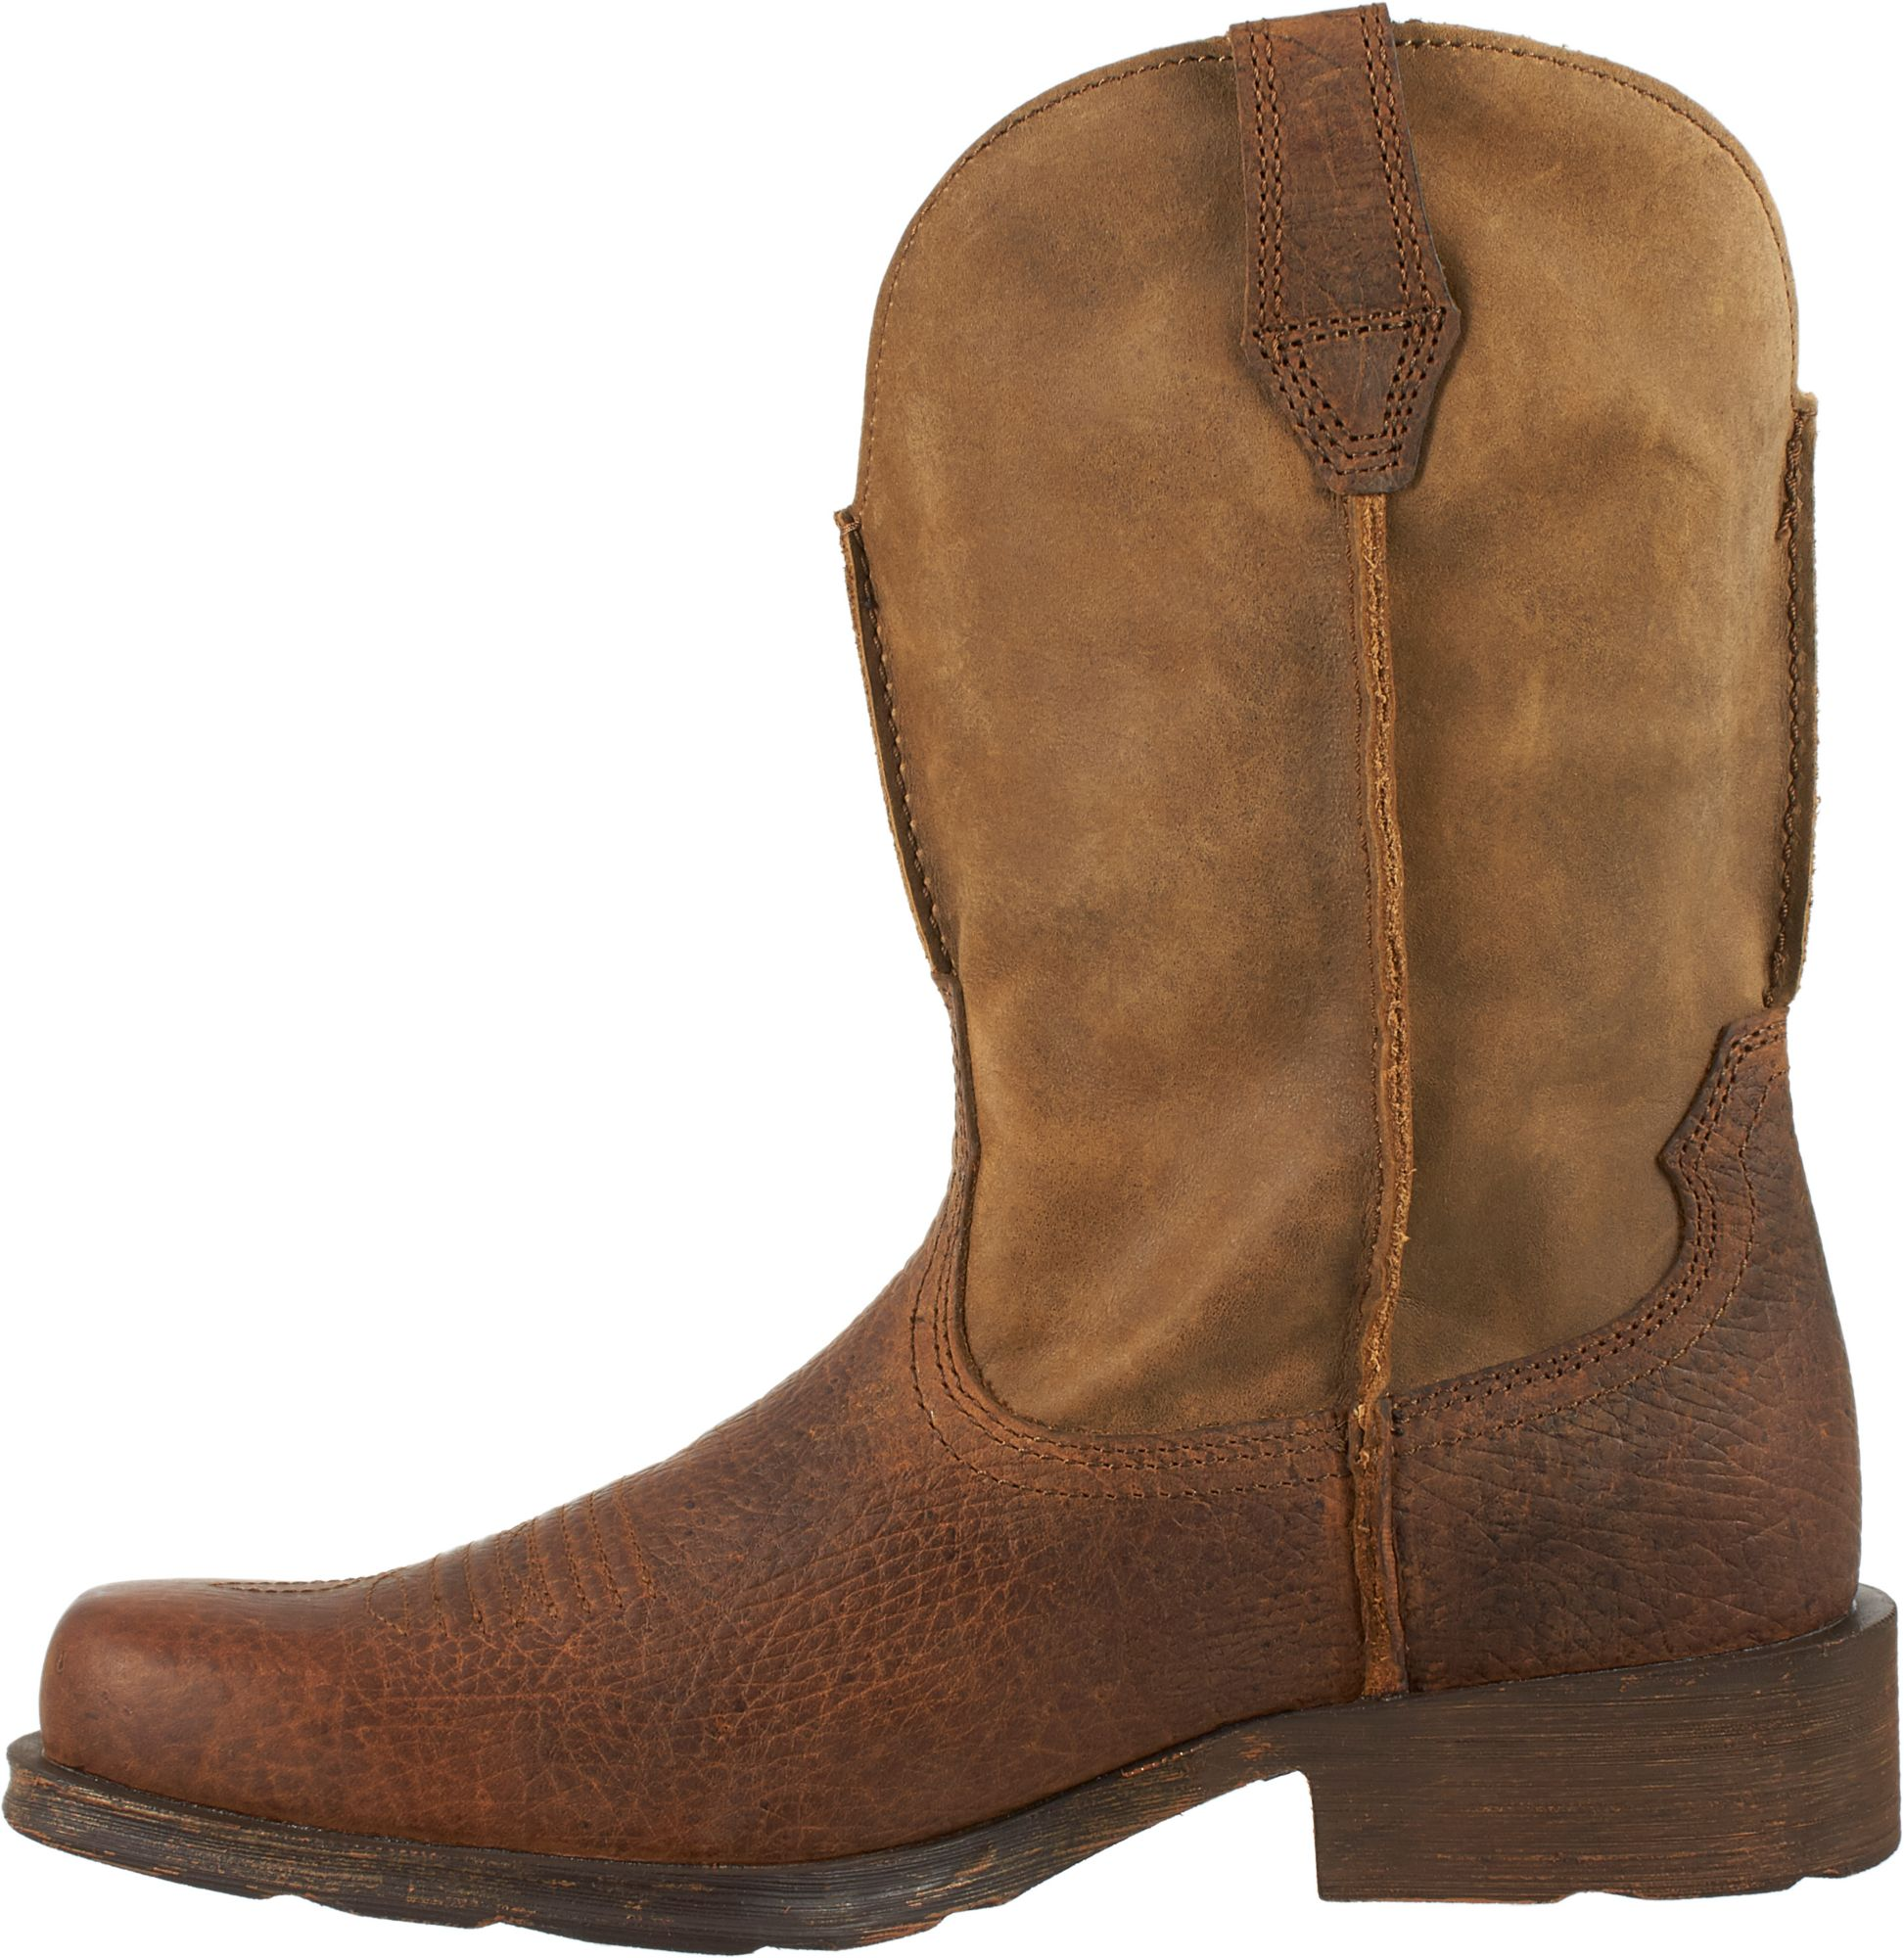 Ariat Men&39s Rambler 11&39&39 Western Boots| DICK&39S Sporting Goods